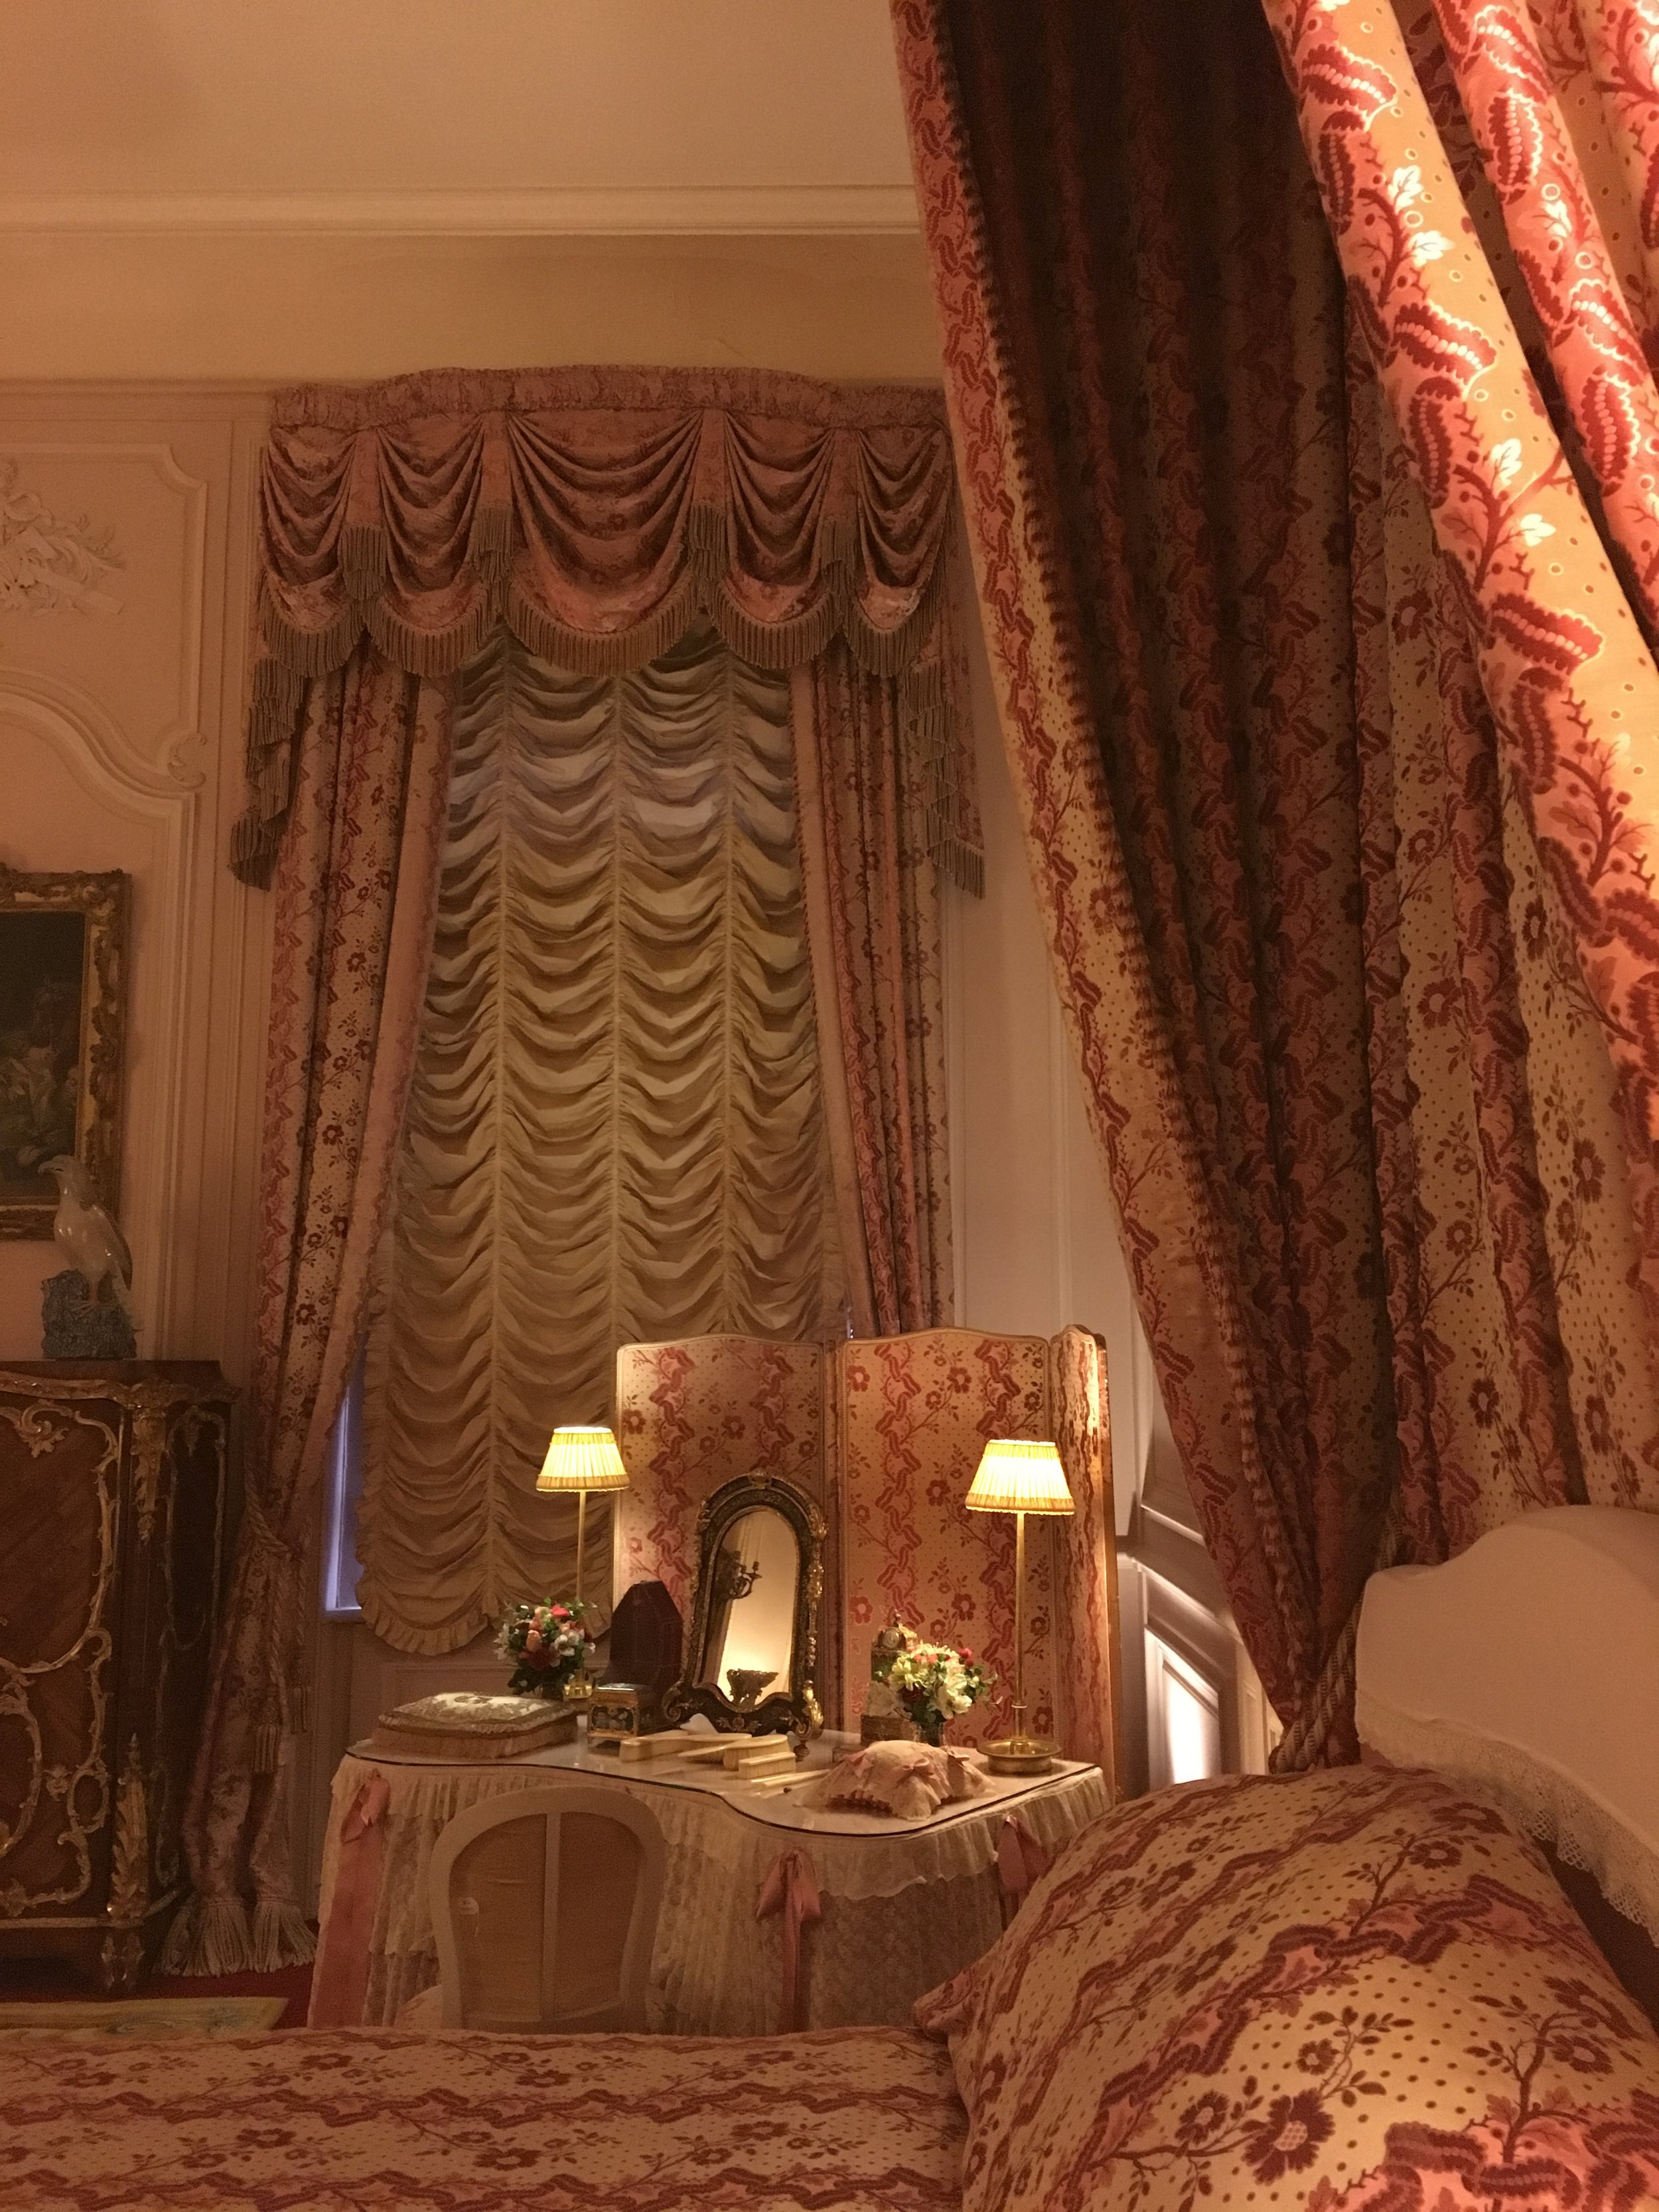 UK Waddesdon Manor guest room details National Trust French Chateau Rothschild Buckinghamshire garden chateau Eileen Hsieh Follow That Bug .jpg